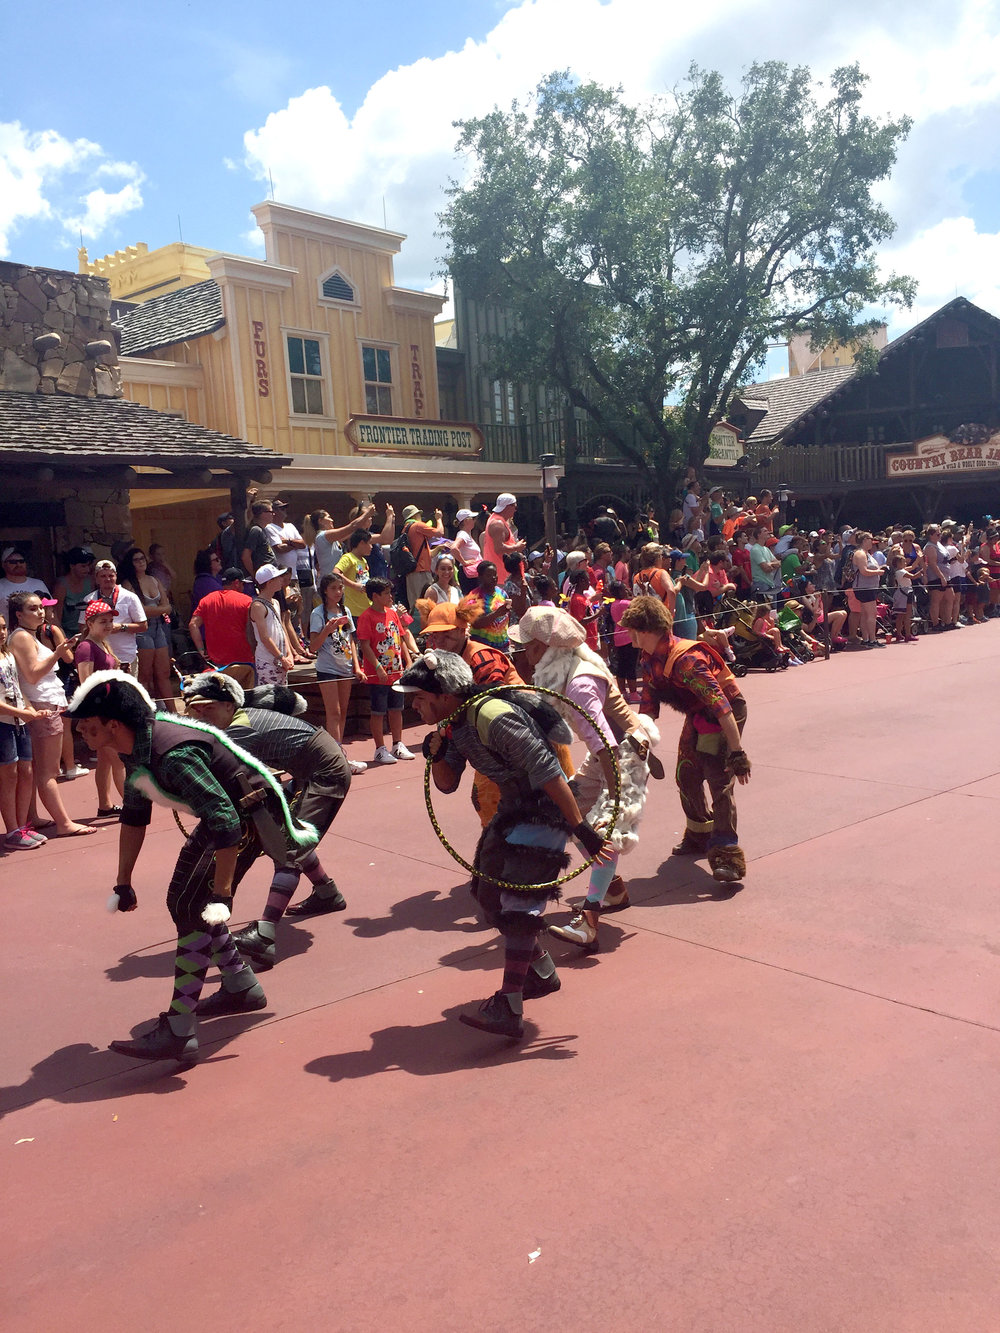 The Lost Boys lead the Peter Pan section of the parade. Their tumbling and tricks are really impressive!